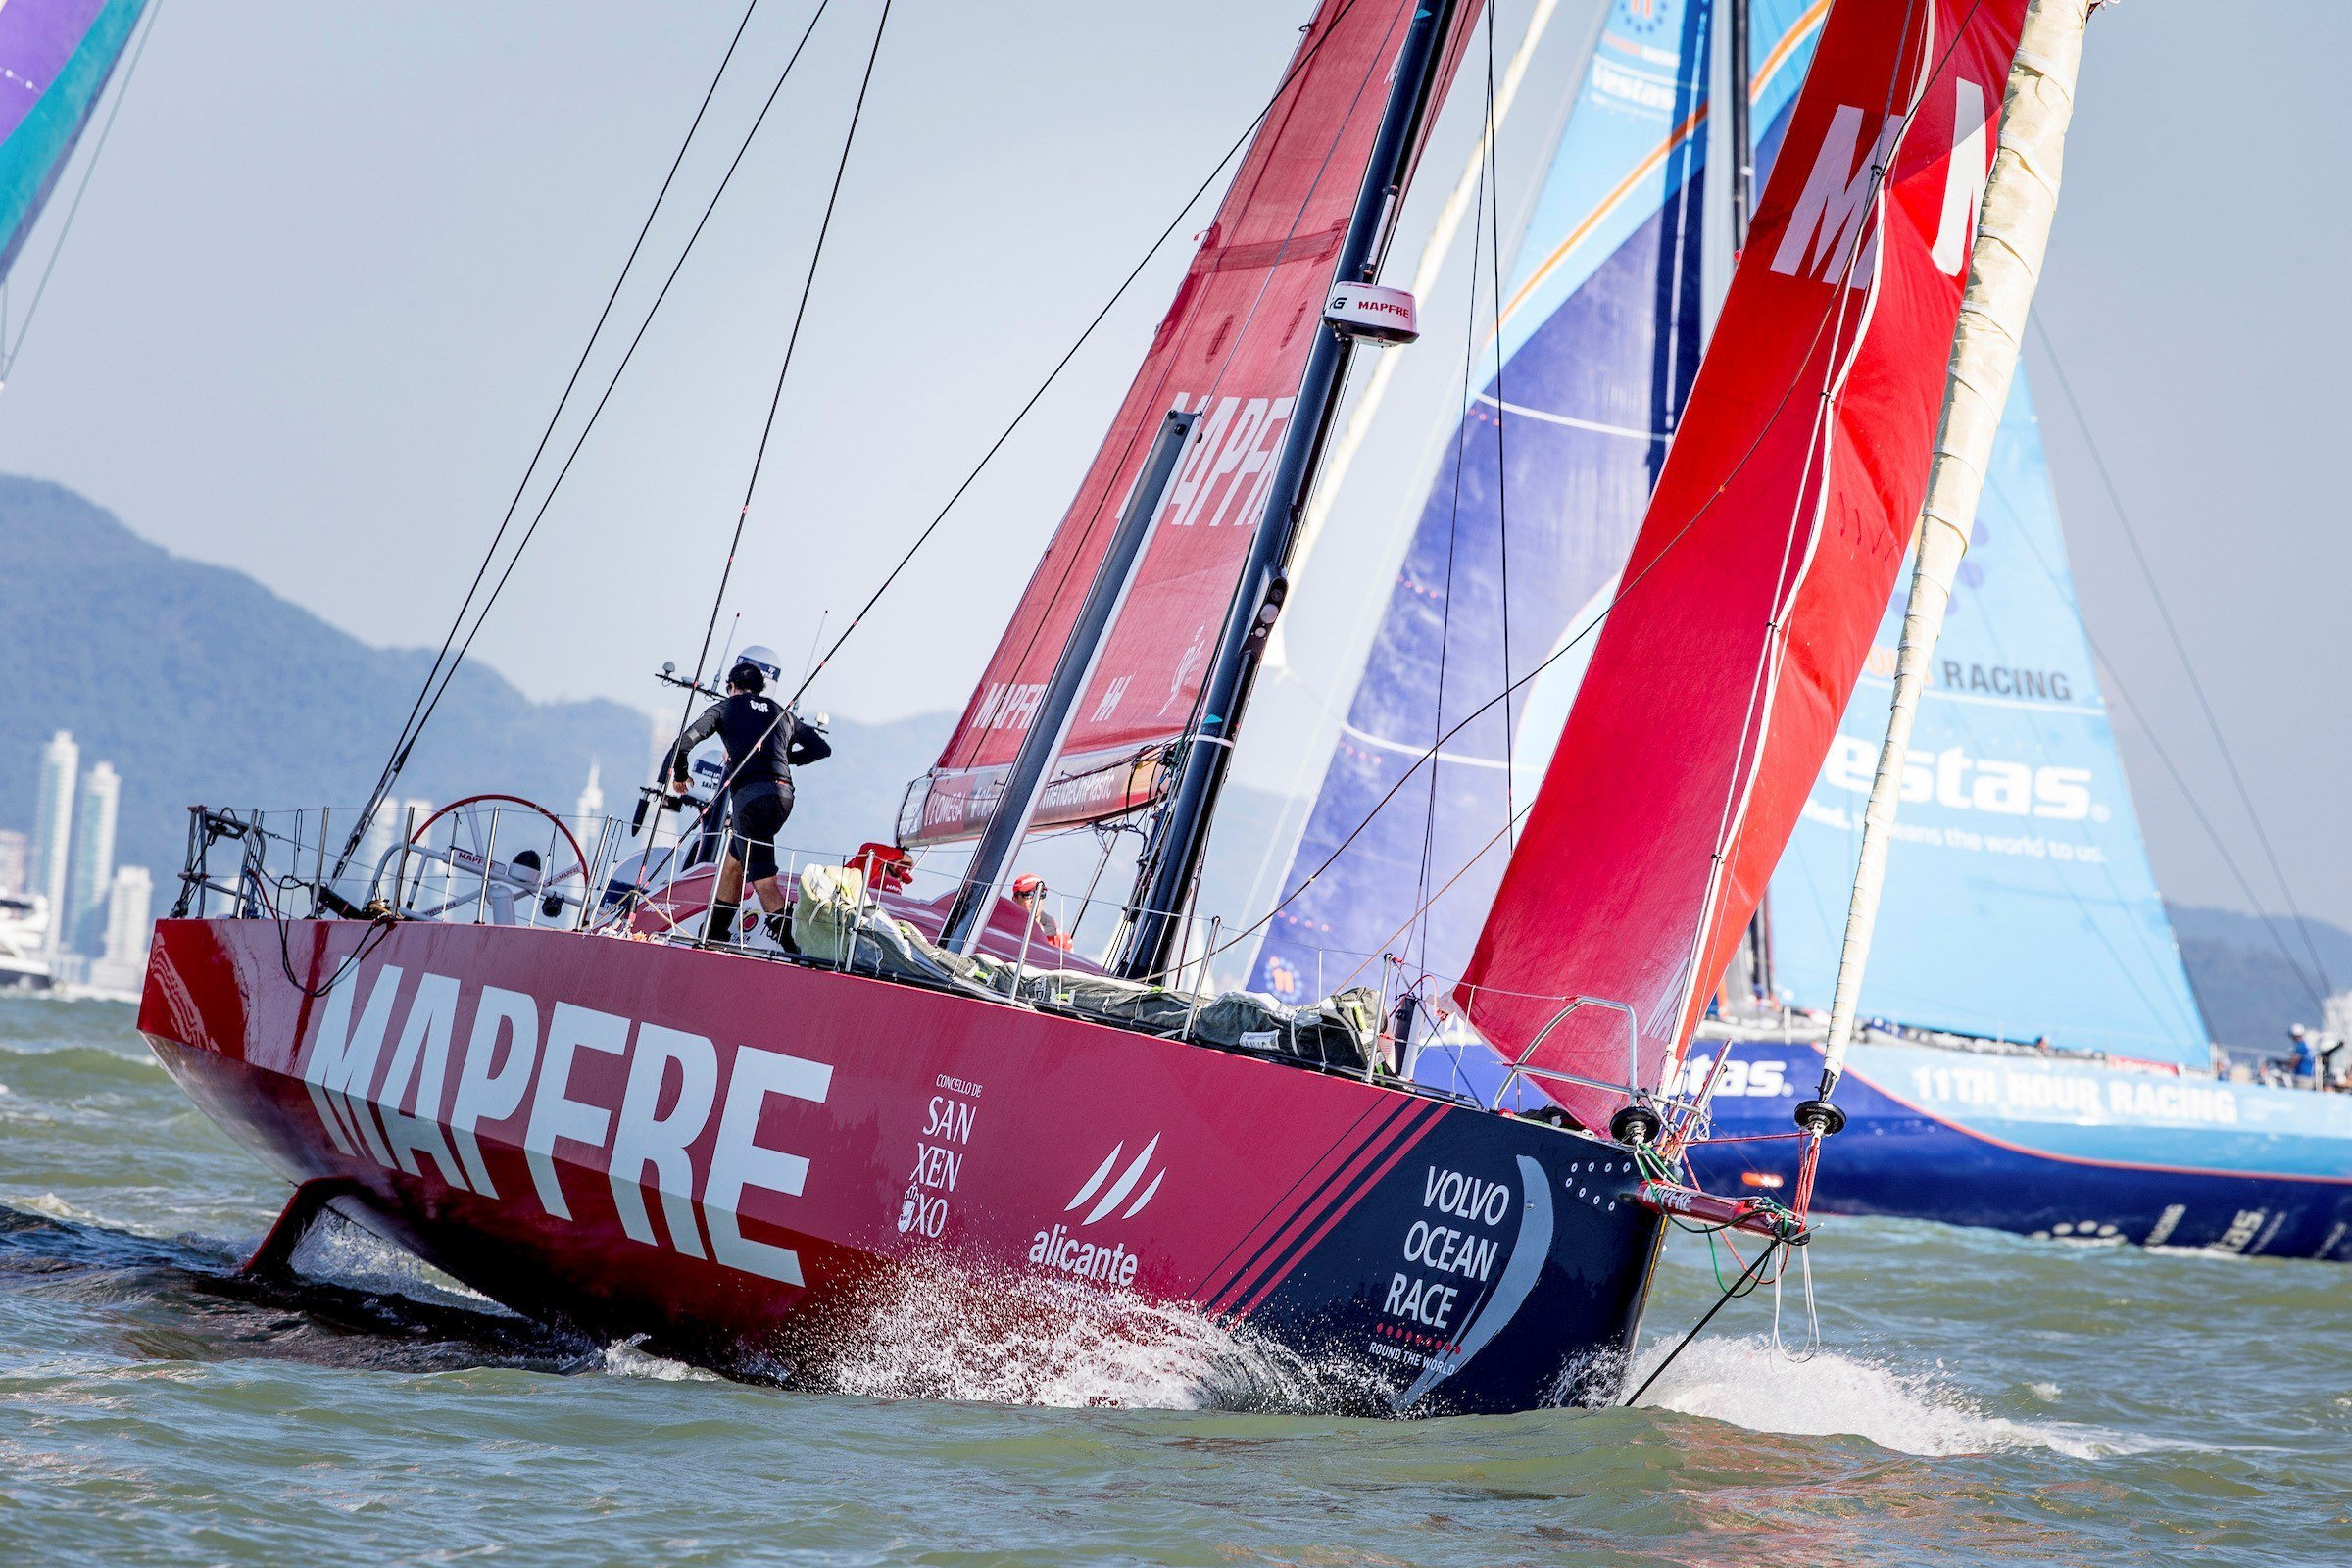 El MAPFRE en la Vovlo Ocean Race. /E.PRESS/Archivo